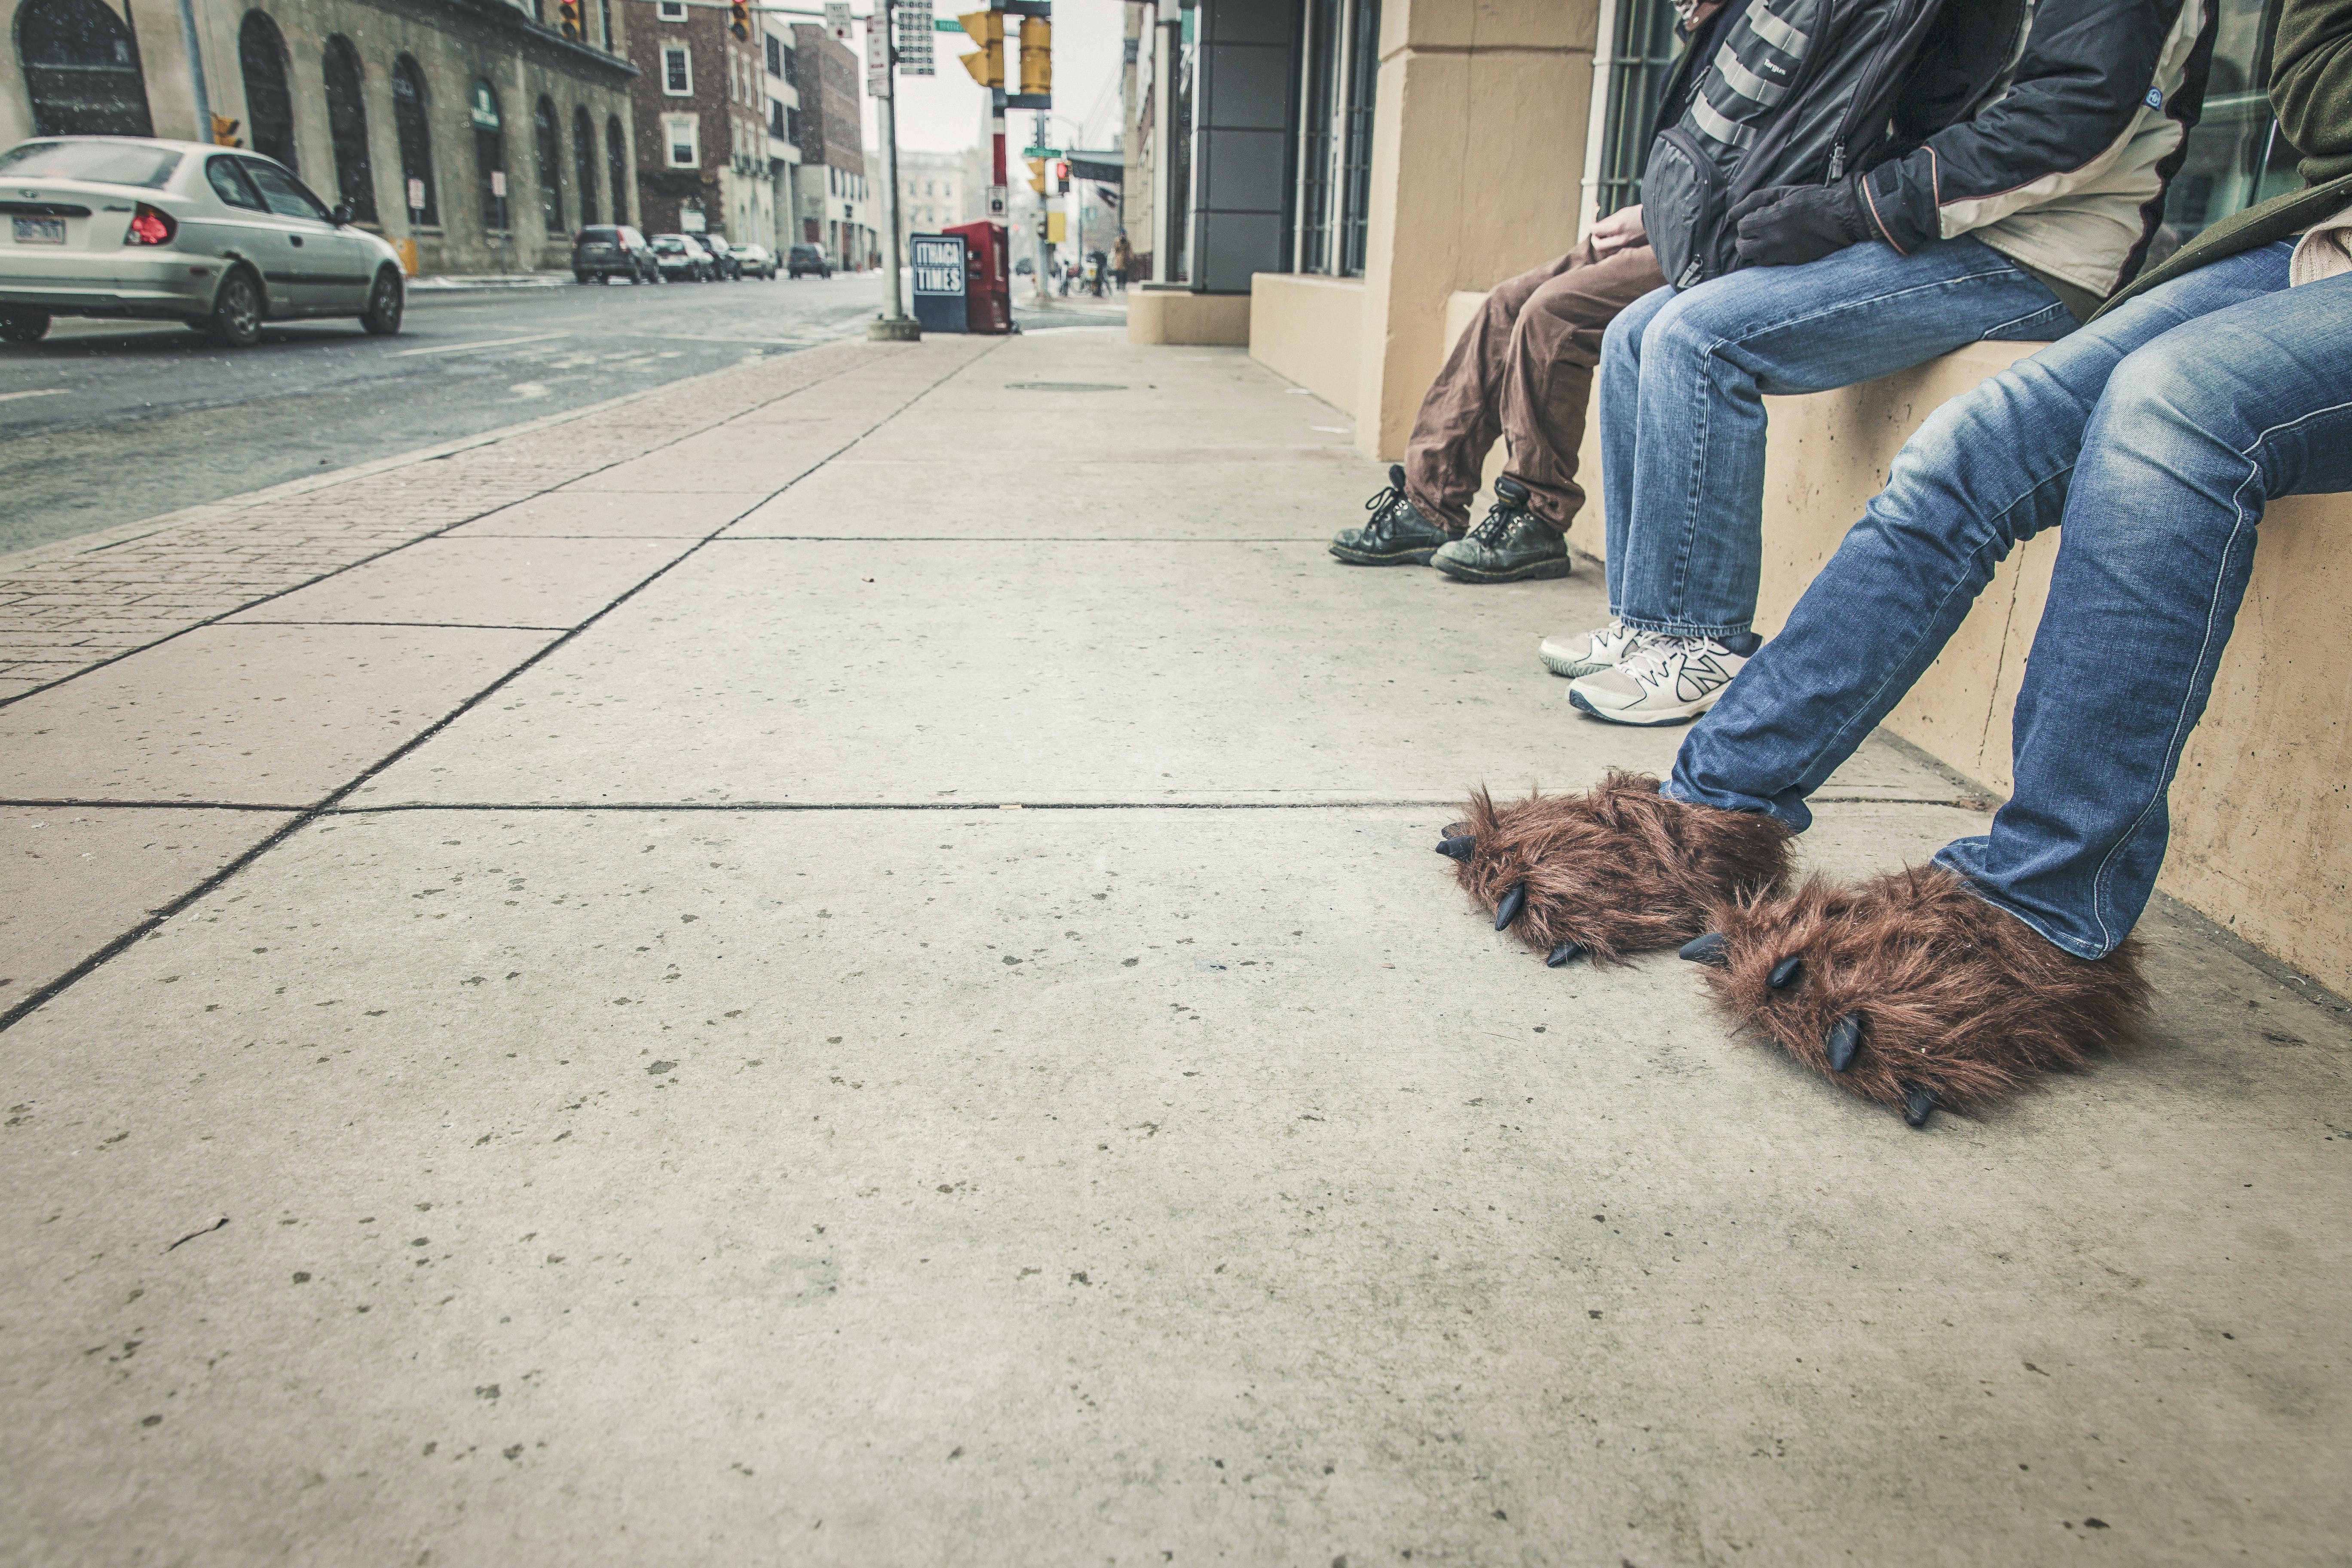 Free stock photo of people, street, sidewalk, jeans